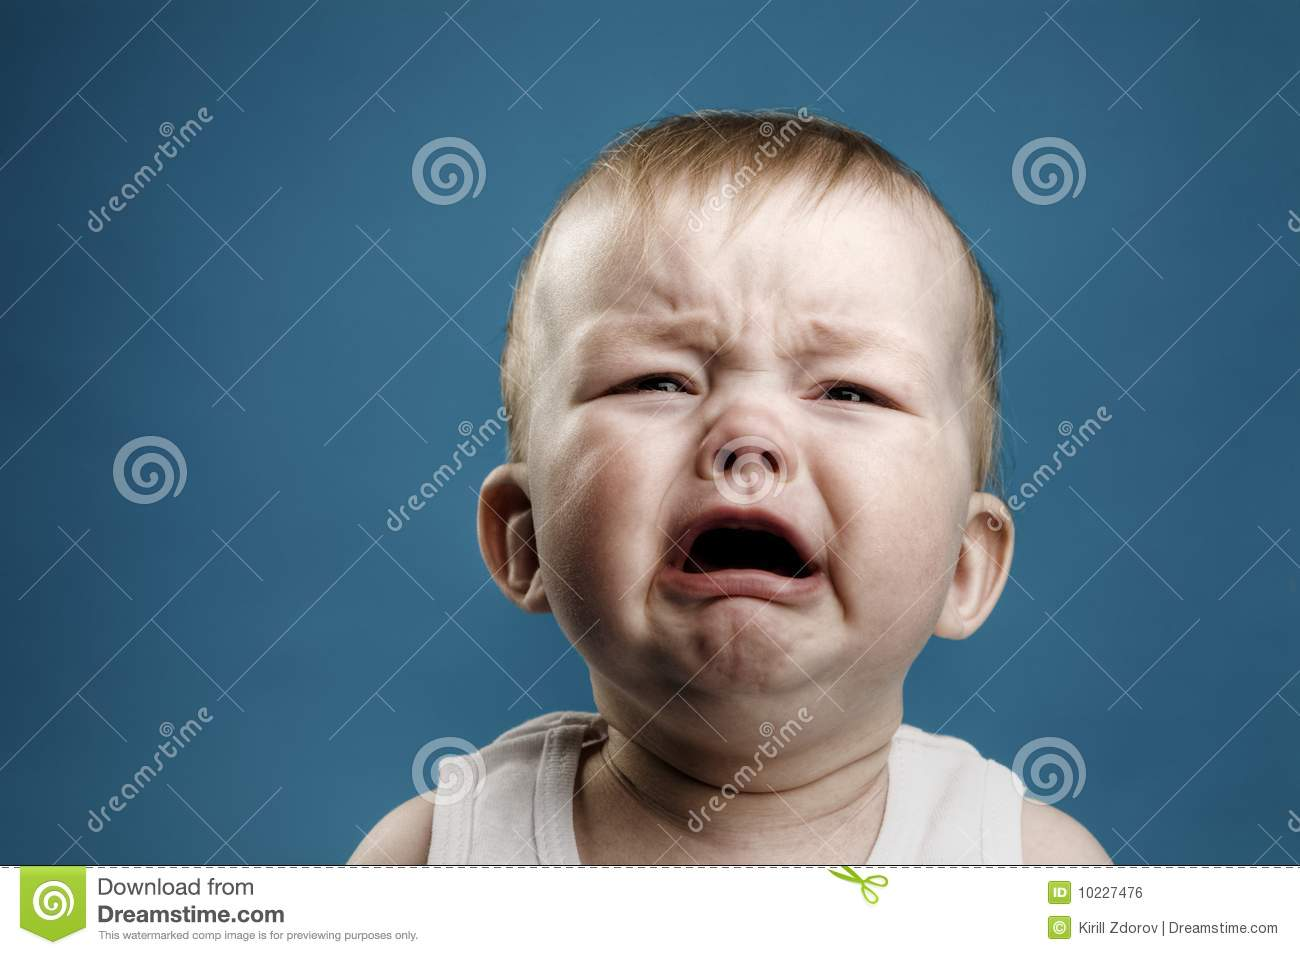 Baby Crying Royalty Free Stock Image  Image: 10227476